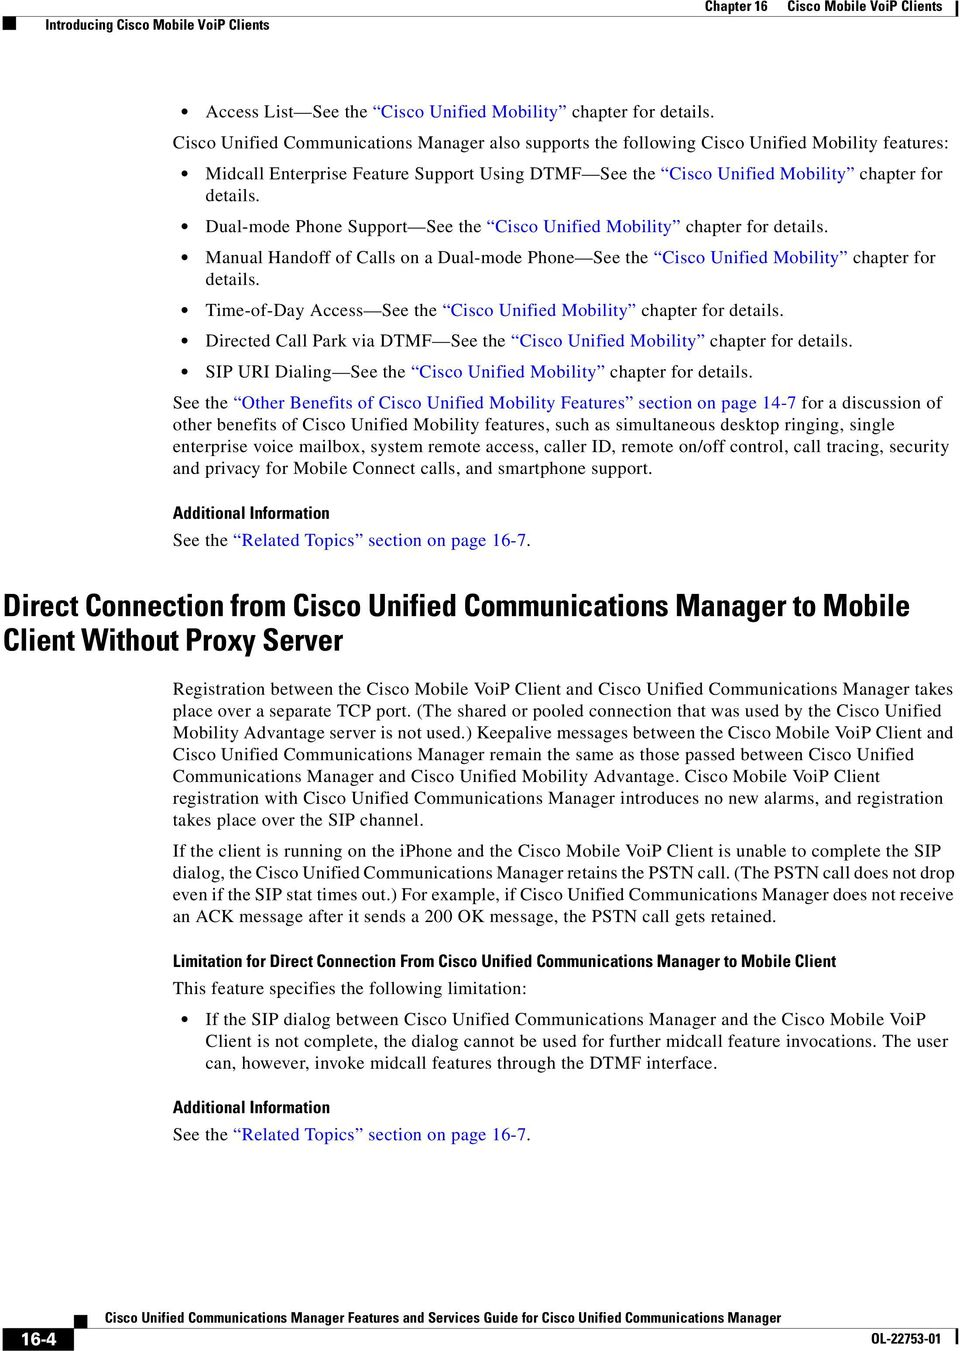 Dual-mode Phone Support See the Cisco Unified Mobility chapter for details. Manual Handoff of Calls on a Dual-mode Phone See the Cisco Unified Mobility chapter for details.